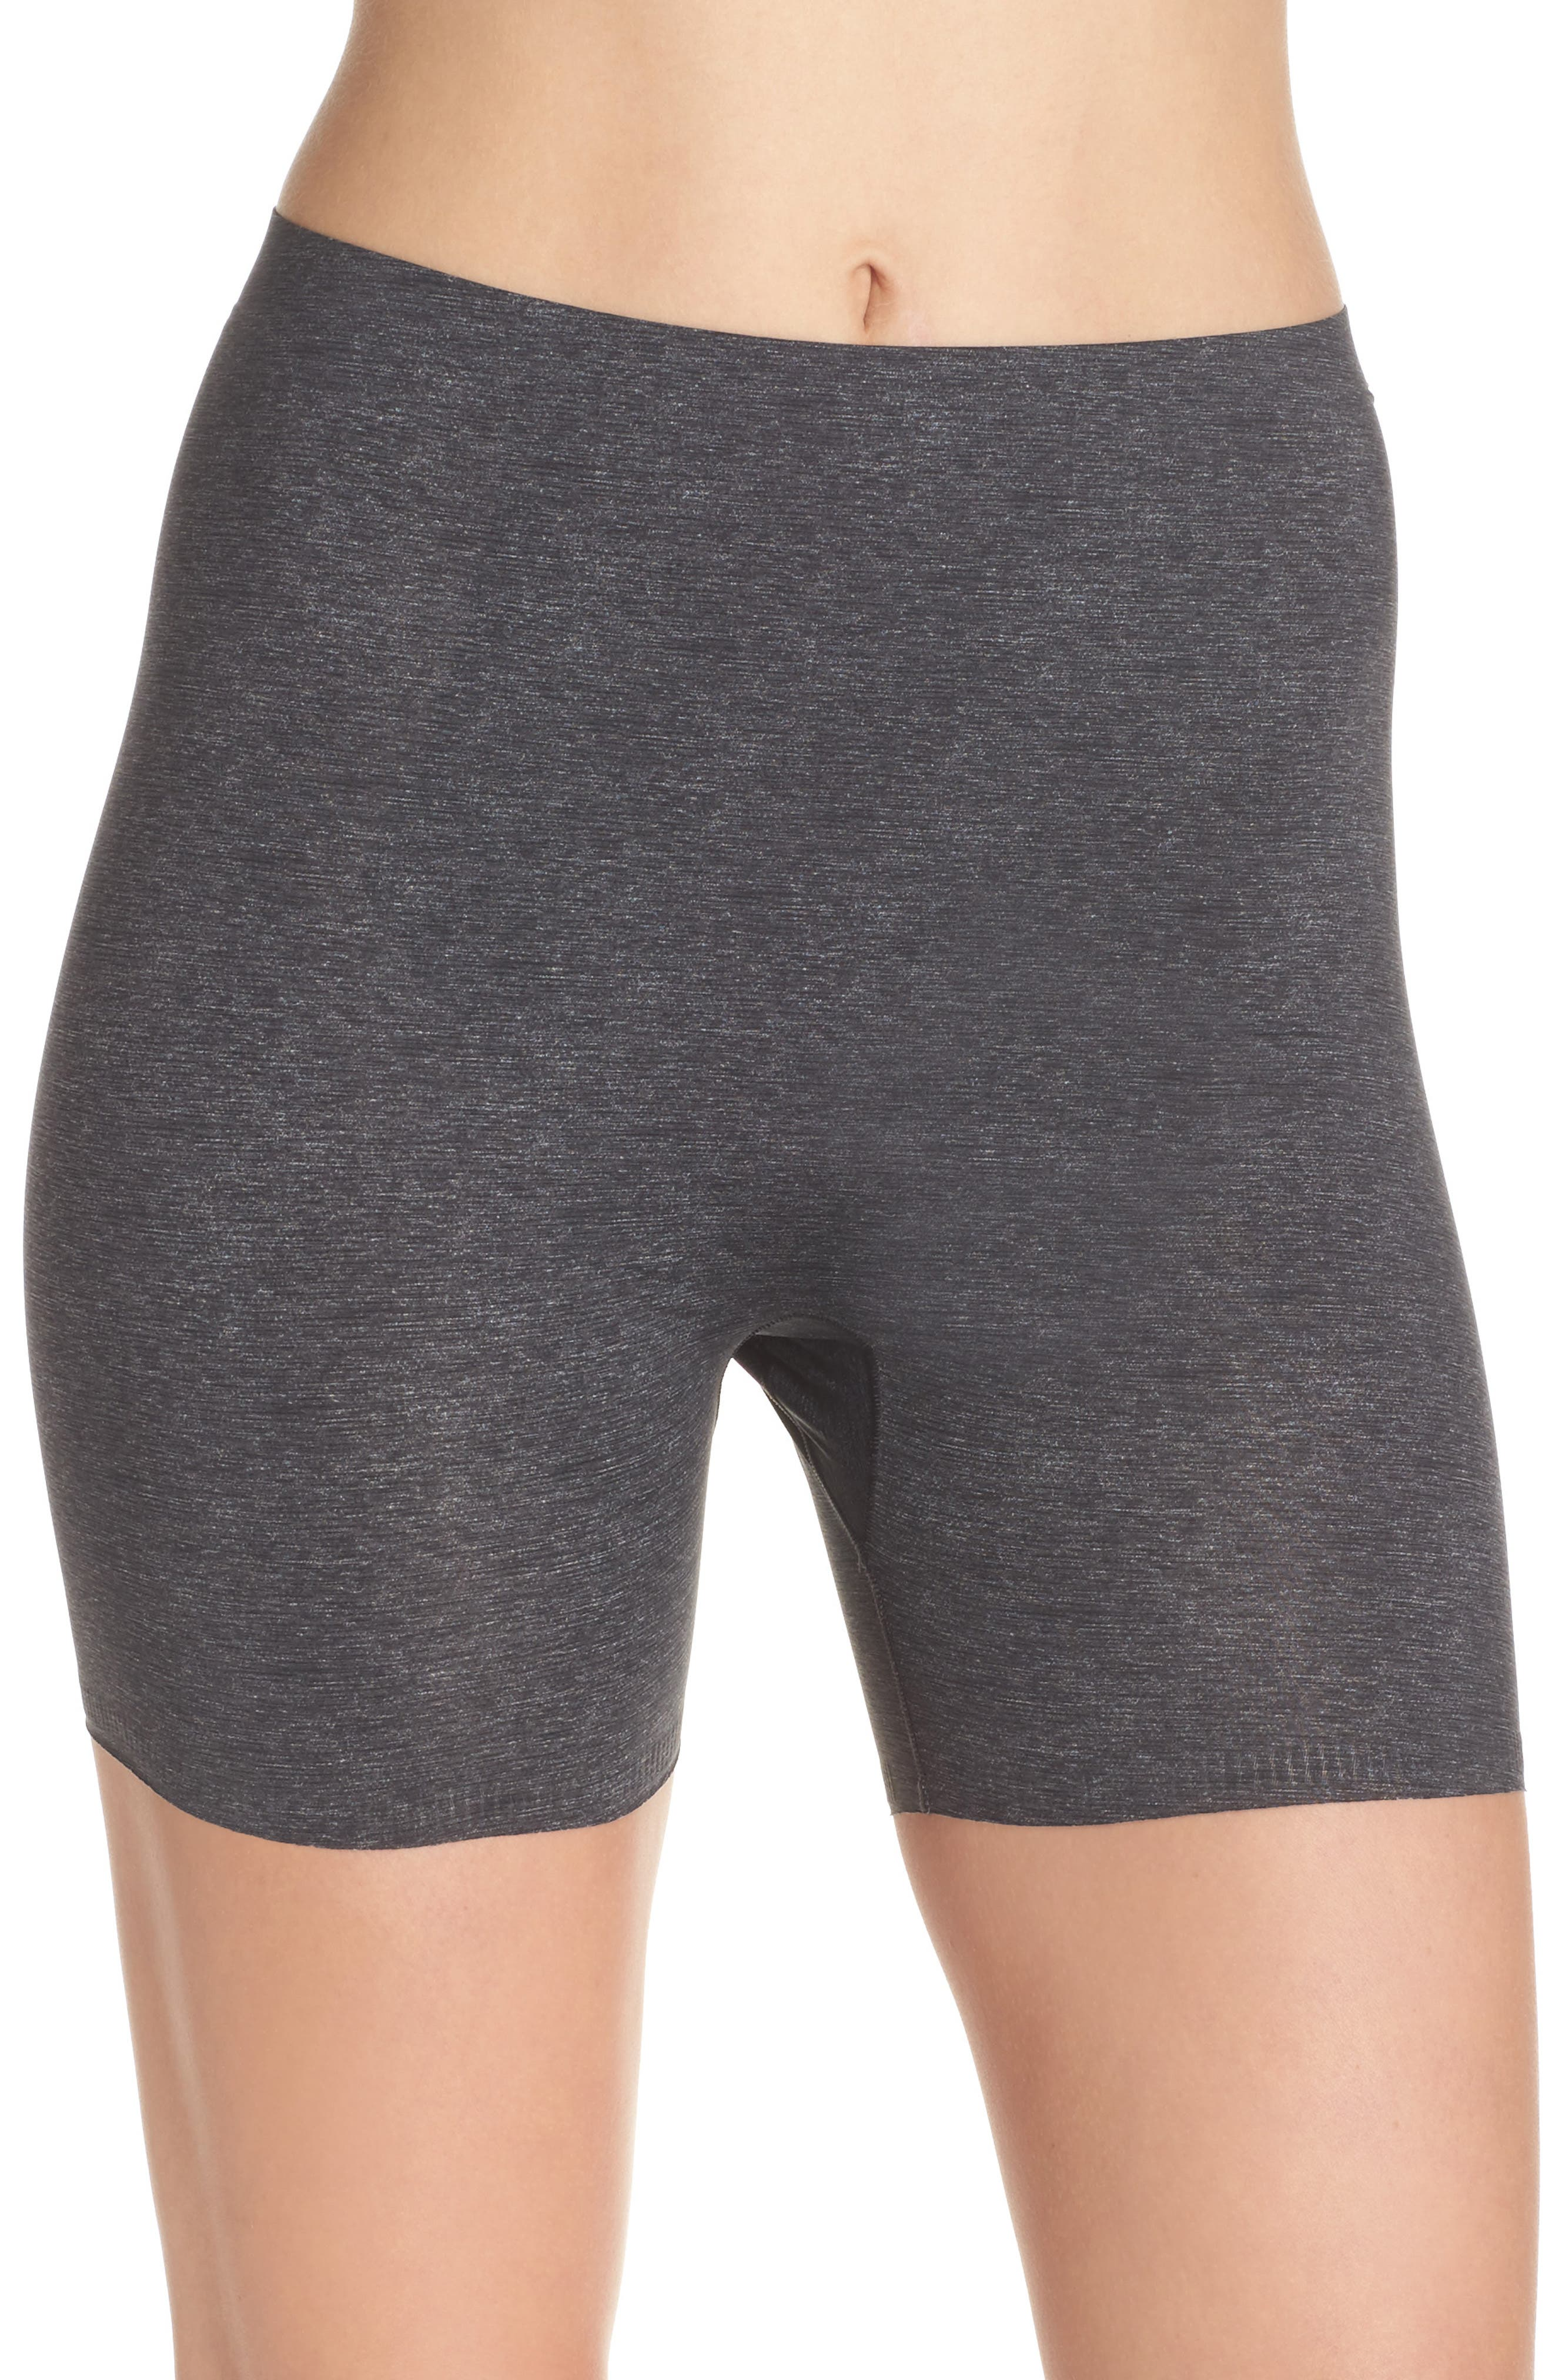 Thinstincts Girl Shorts,                             Main thumbnail 1, color,                             Heather Charcoal